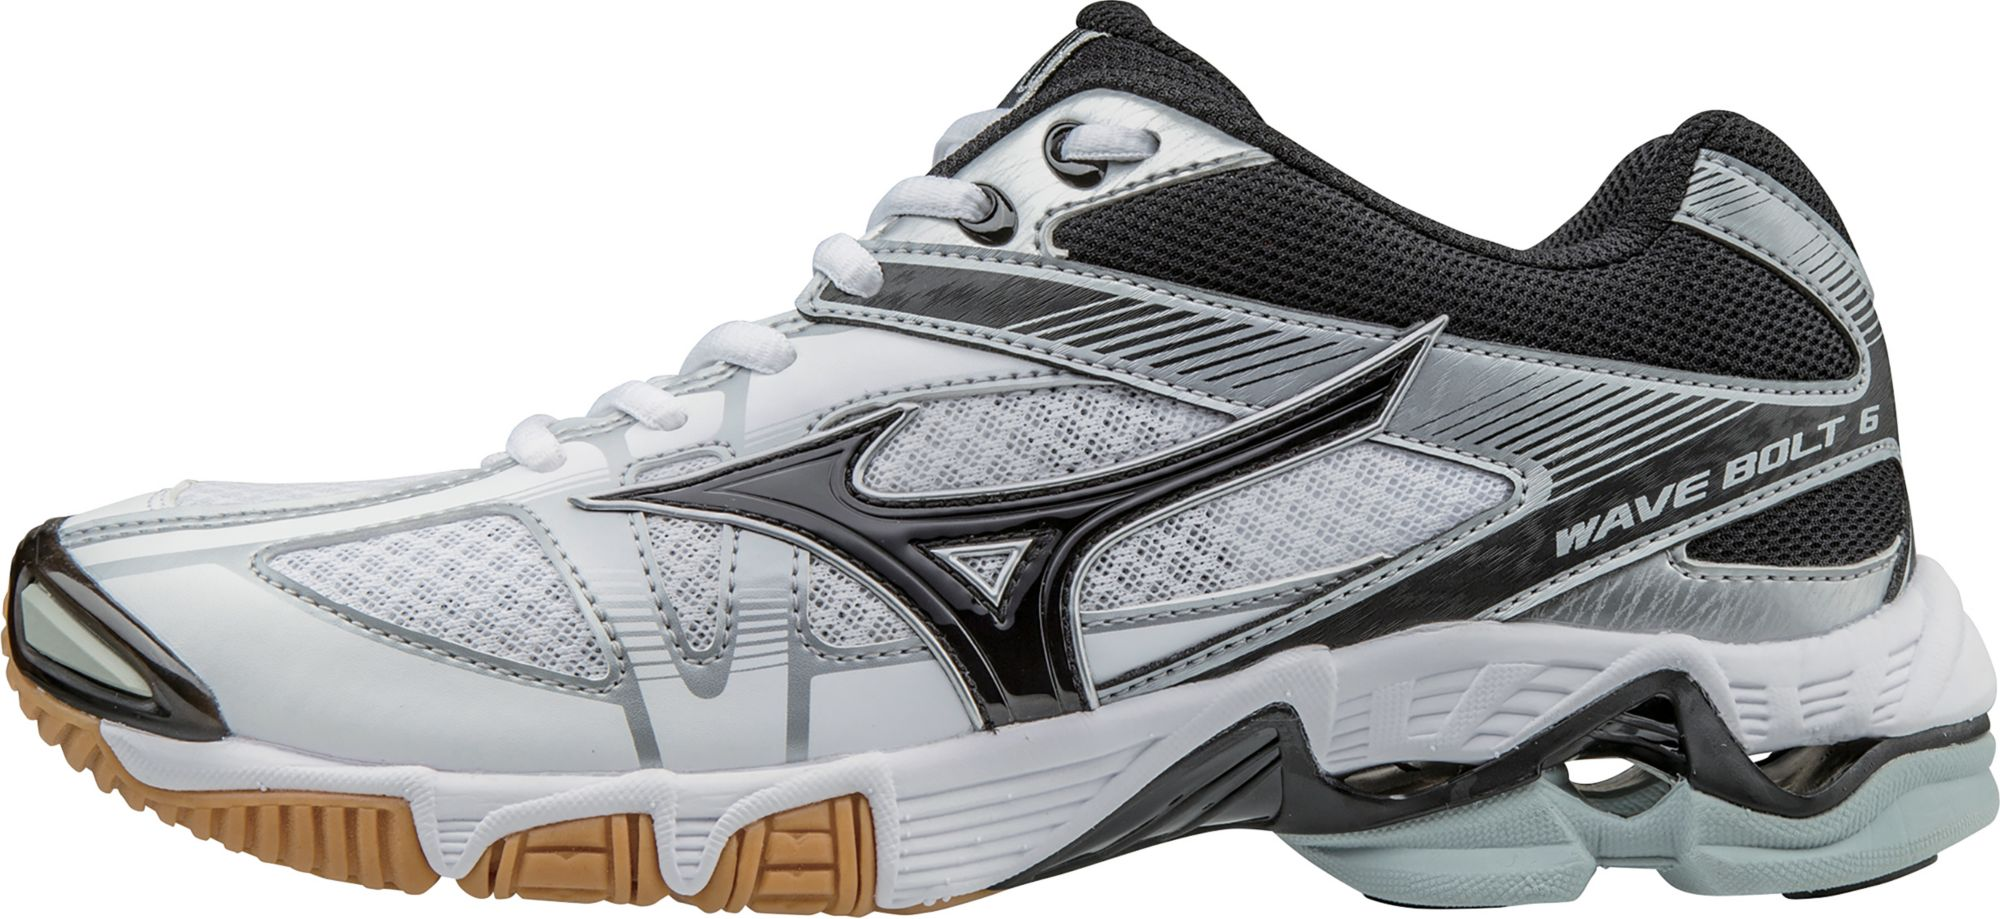 69b47c0fc2cf ... mizuno wave bolt review Mizuno Women\u0027s Wave Bolt 6 Volleyball Shoes  ...